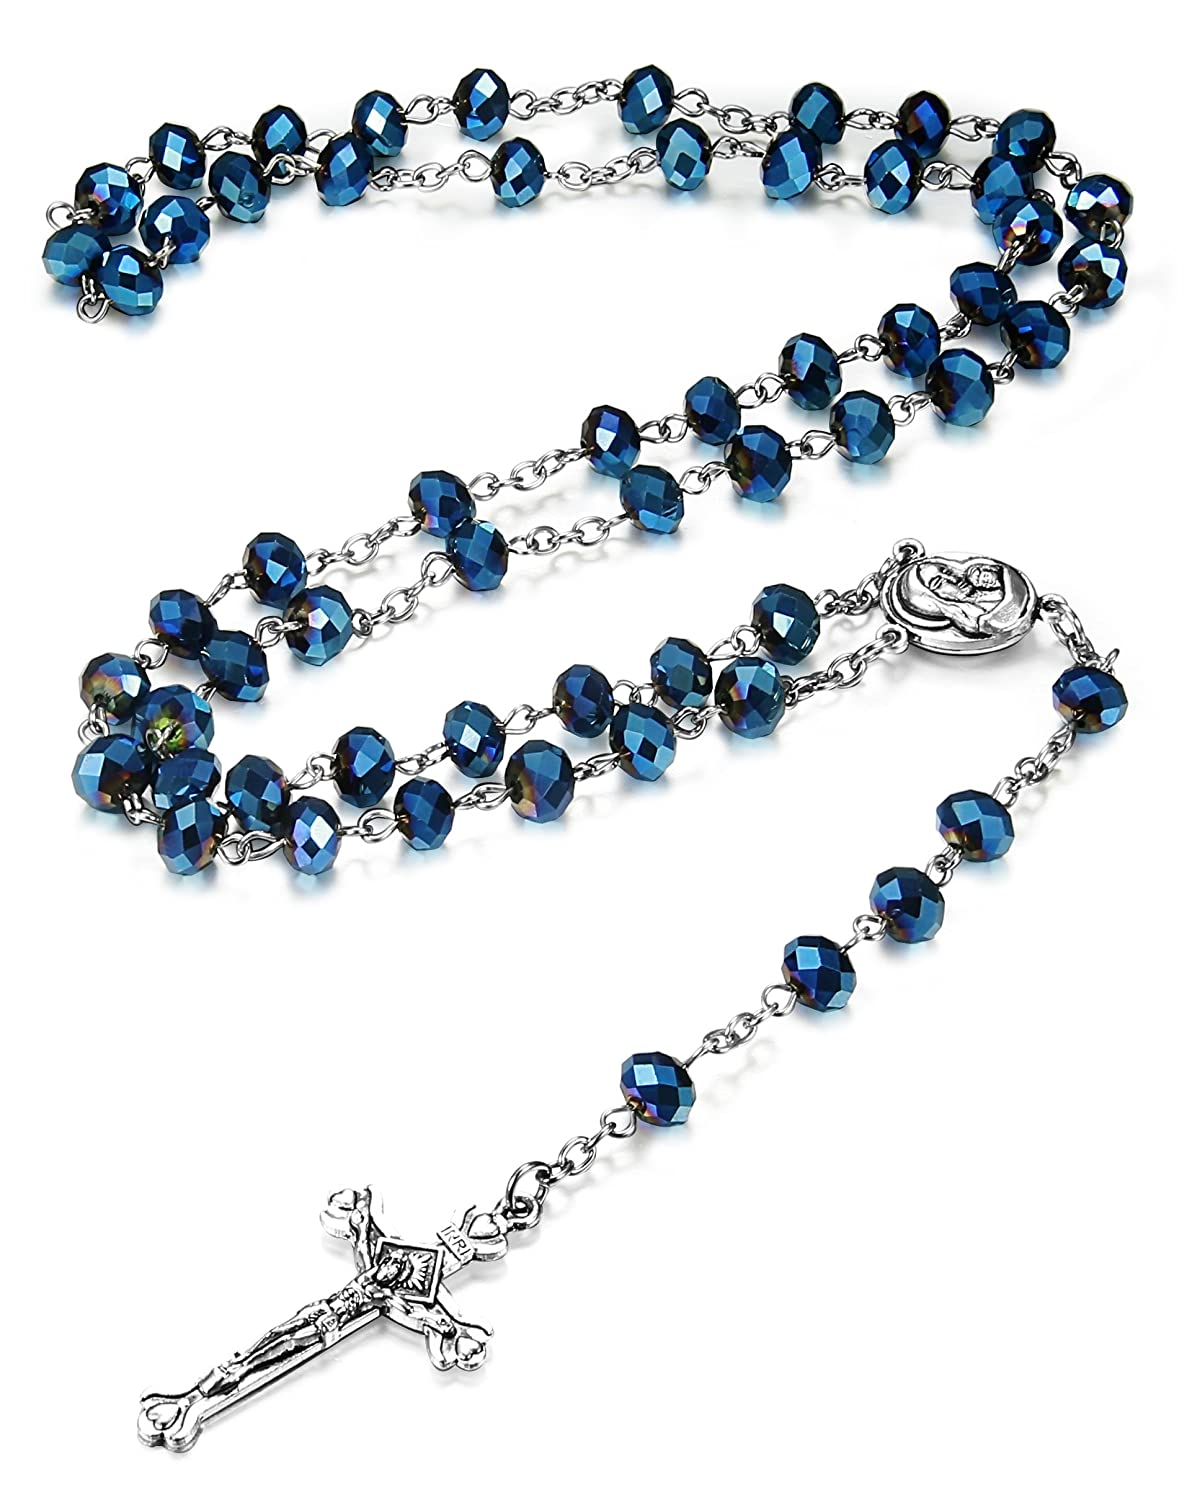 LOYALLOOK 8mm-10MM Blue Crystal Beads Catholic Rosary Necklace Crucifix Cross Pendant, 30 Inch TI0313002-10